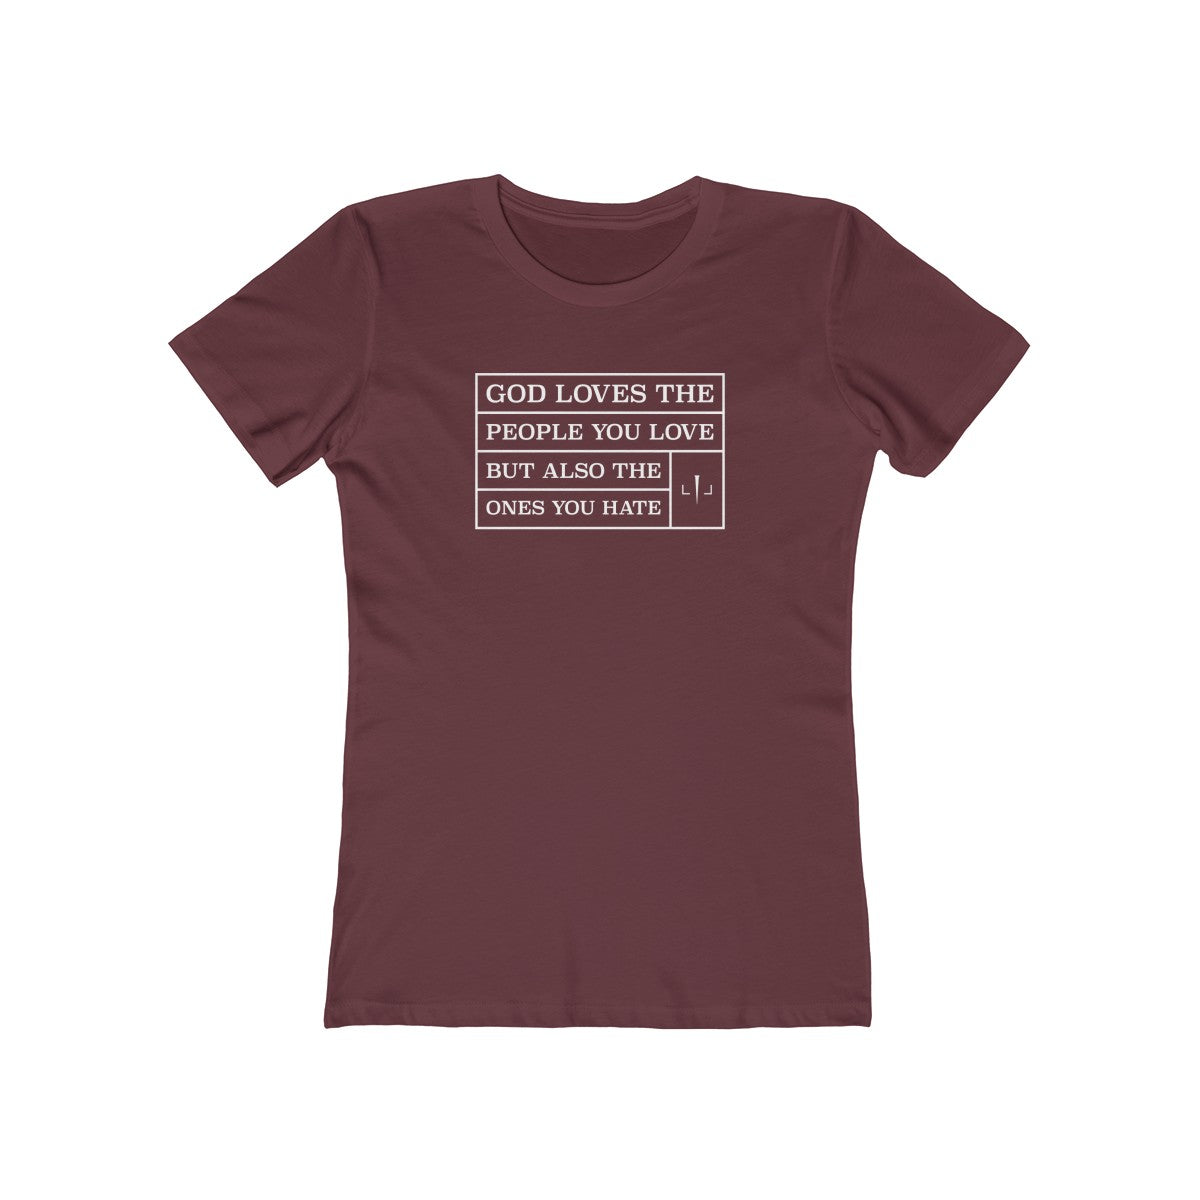 God Loves The People You Love But Also The Ones You Hate Women's The Boyfriend Tee